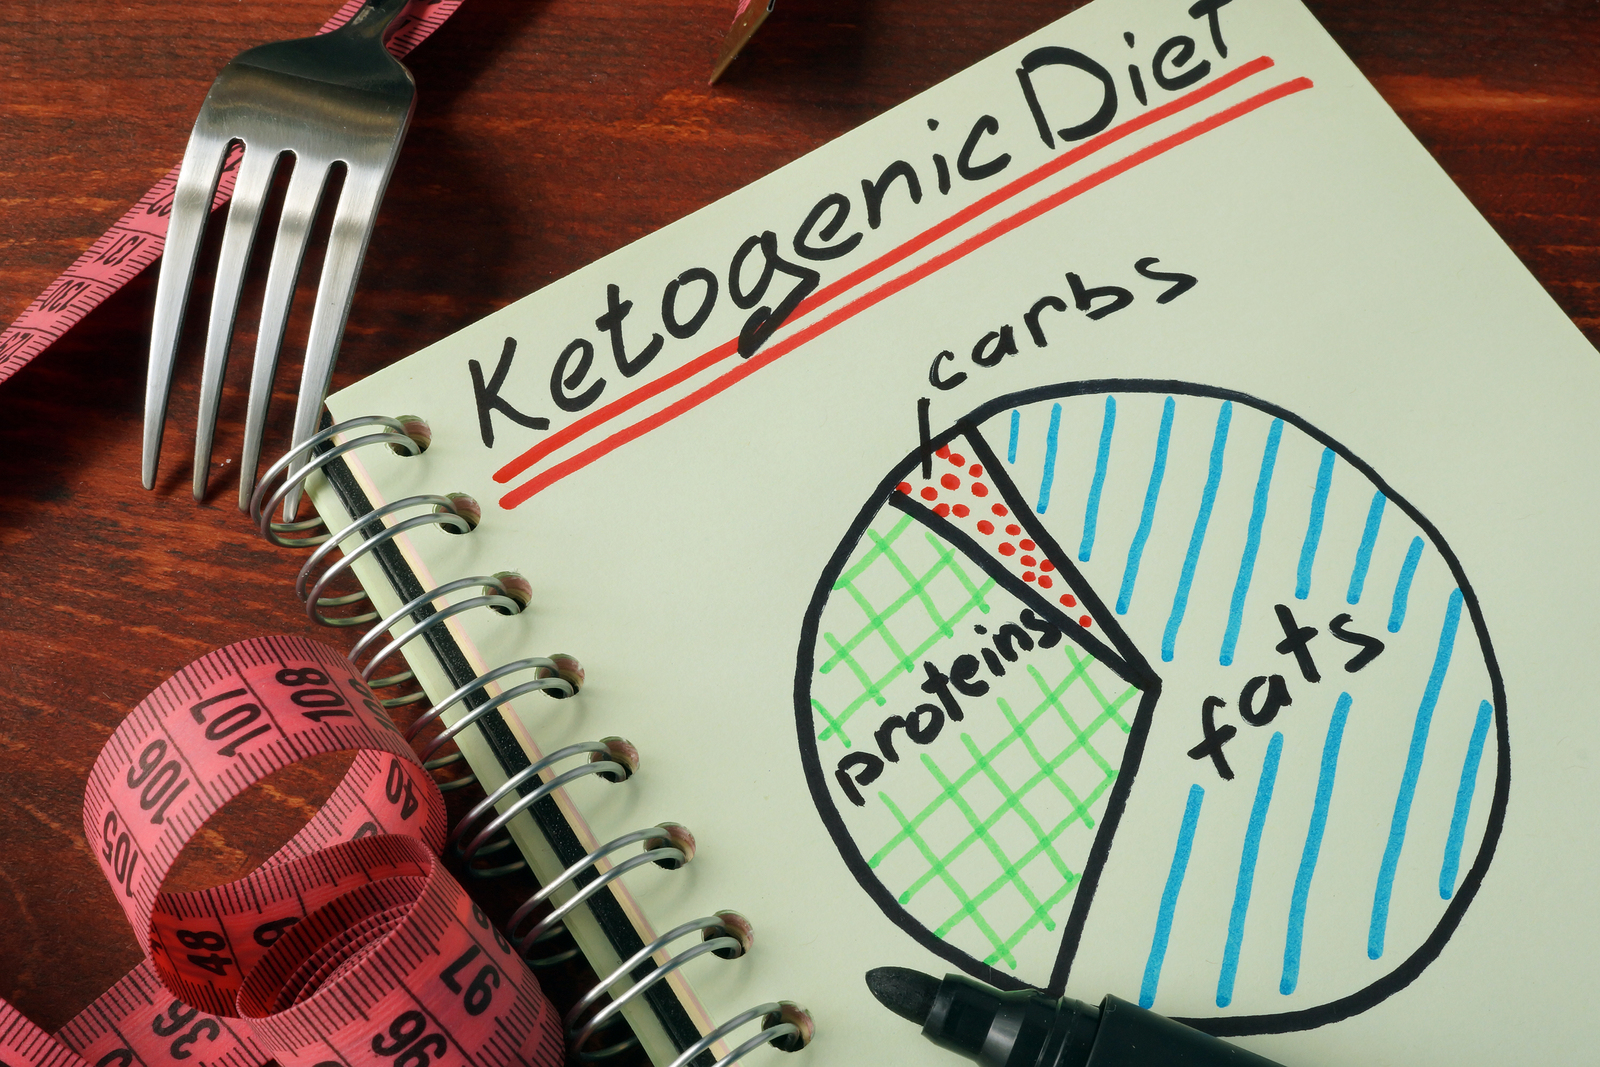 The Keto Diet To Easily Lose a Lot of Weight